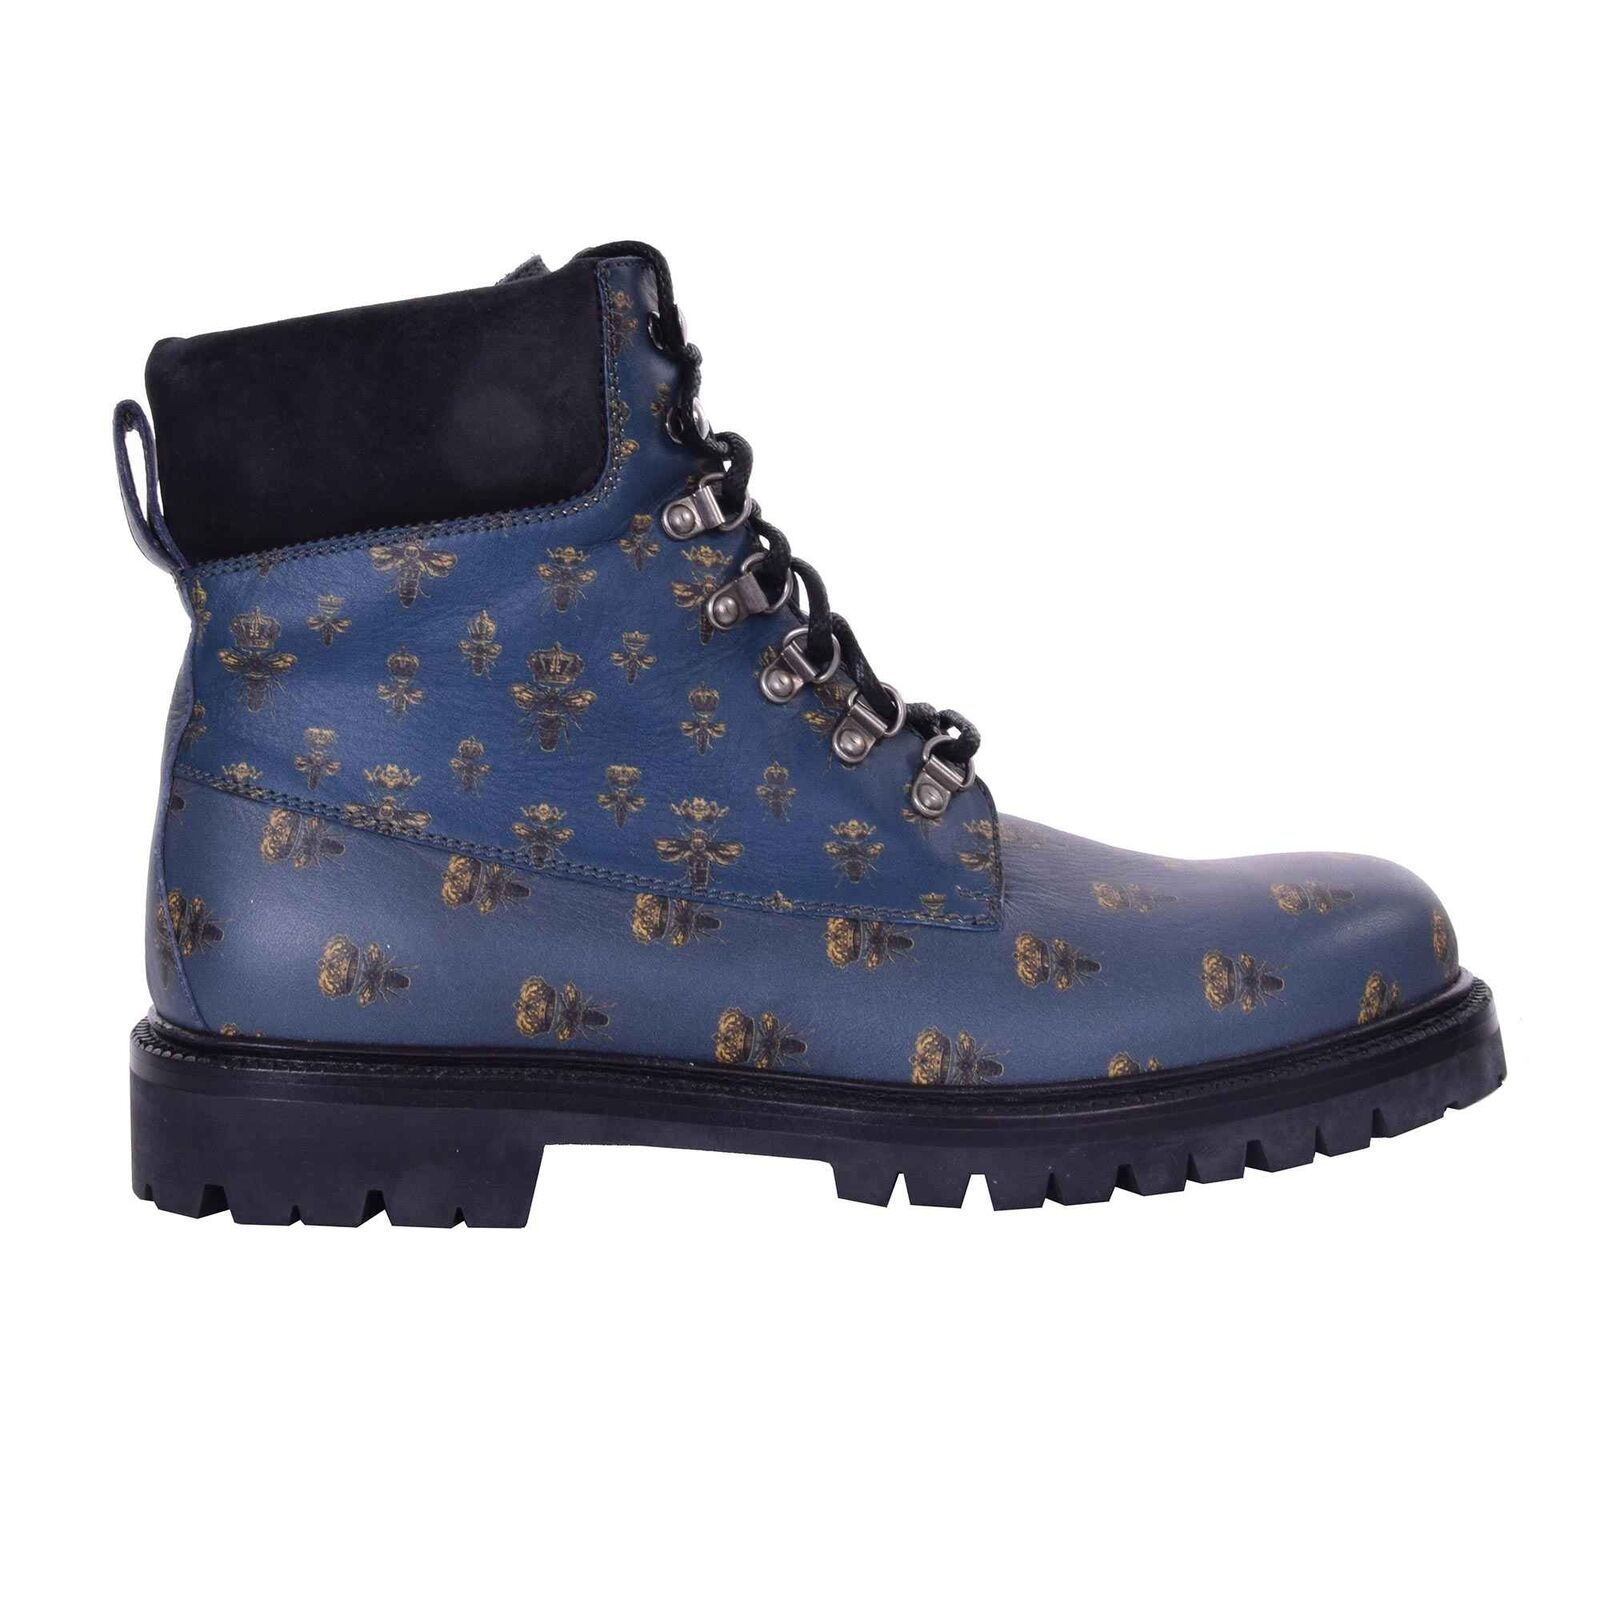 Dolce & gabbana ankle boots bagheria bee crowns blue black 06963